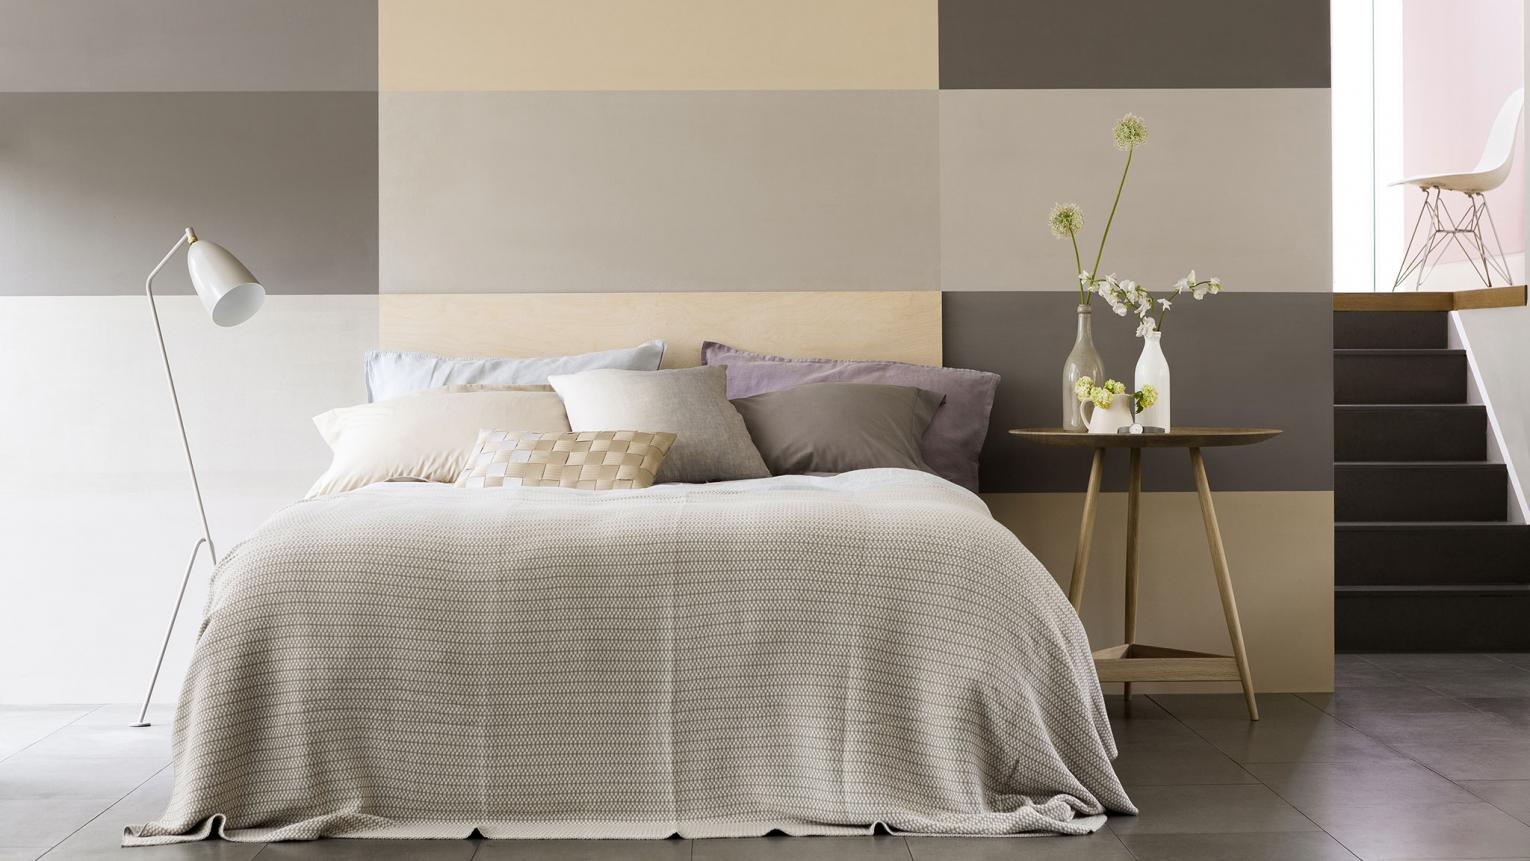 Want to create a gender-neutral bedroom? The key is to choose a colour scheme that has both masculine and feminine appeal.